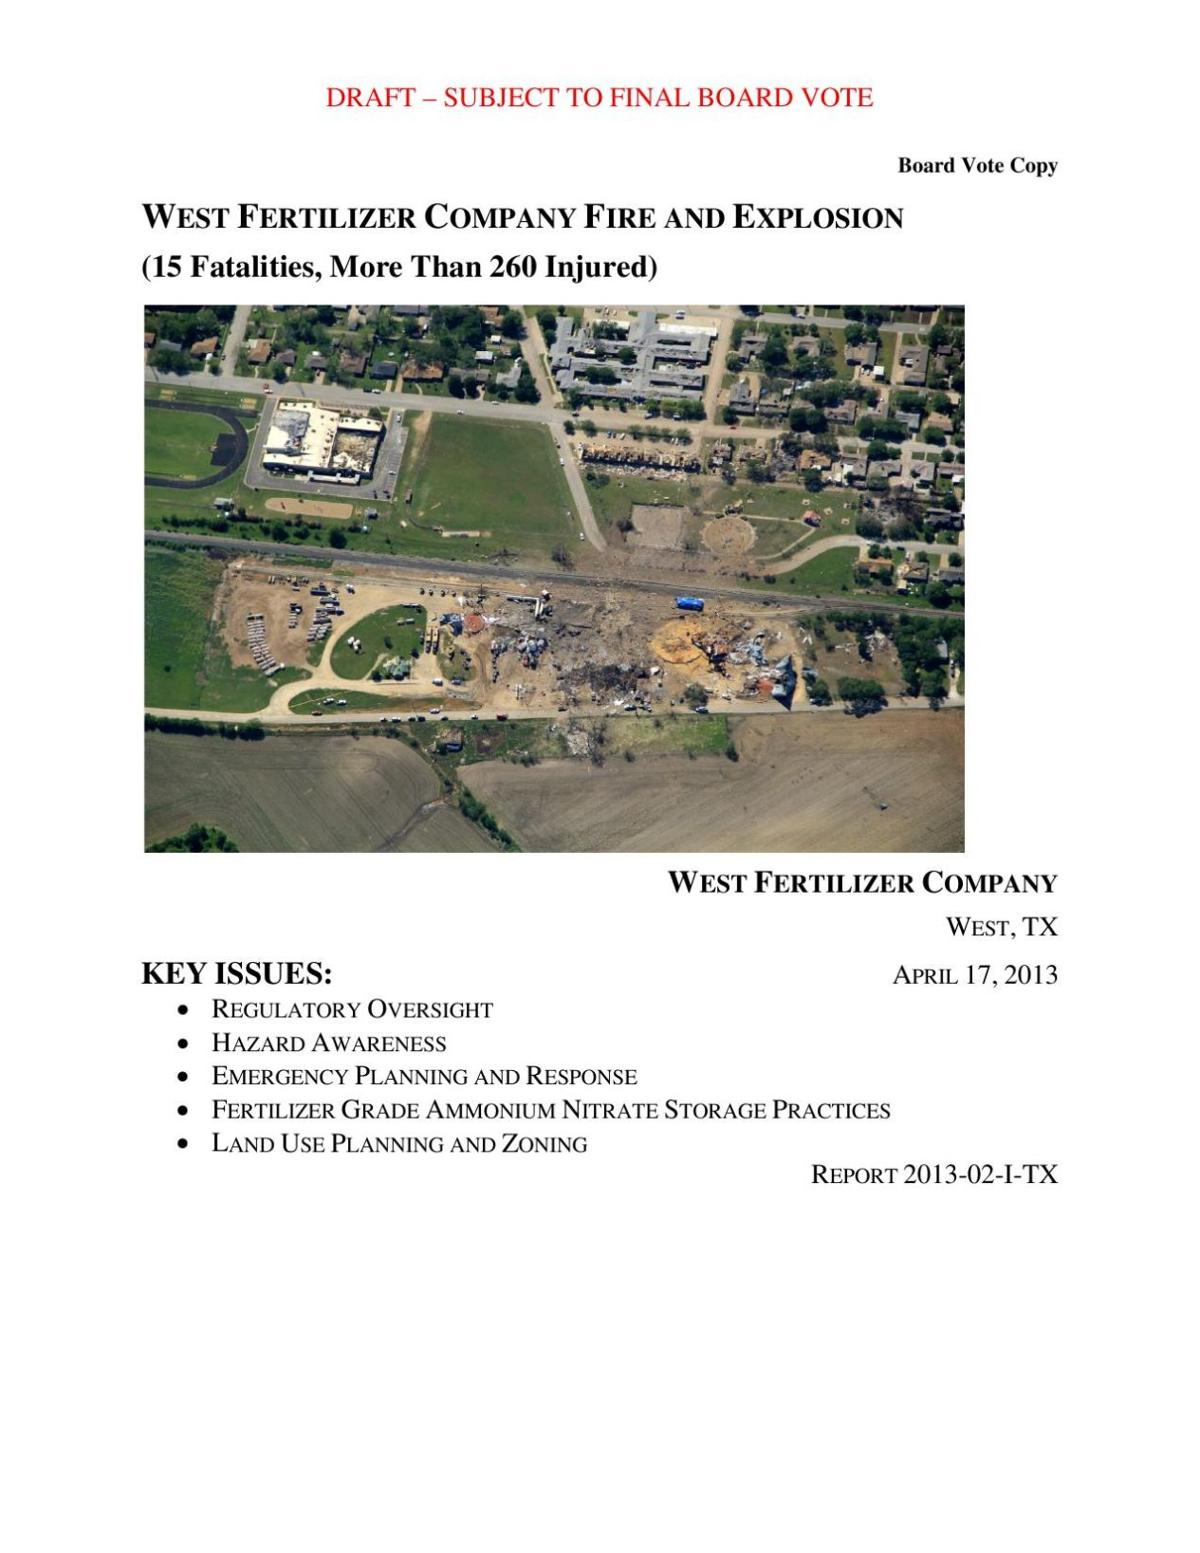 Report: West Fertilizer Fire and Explosion